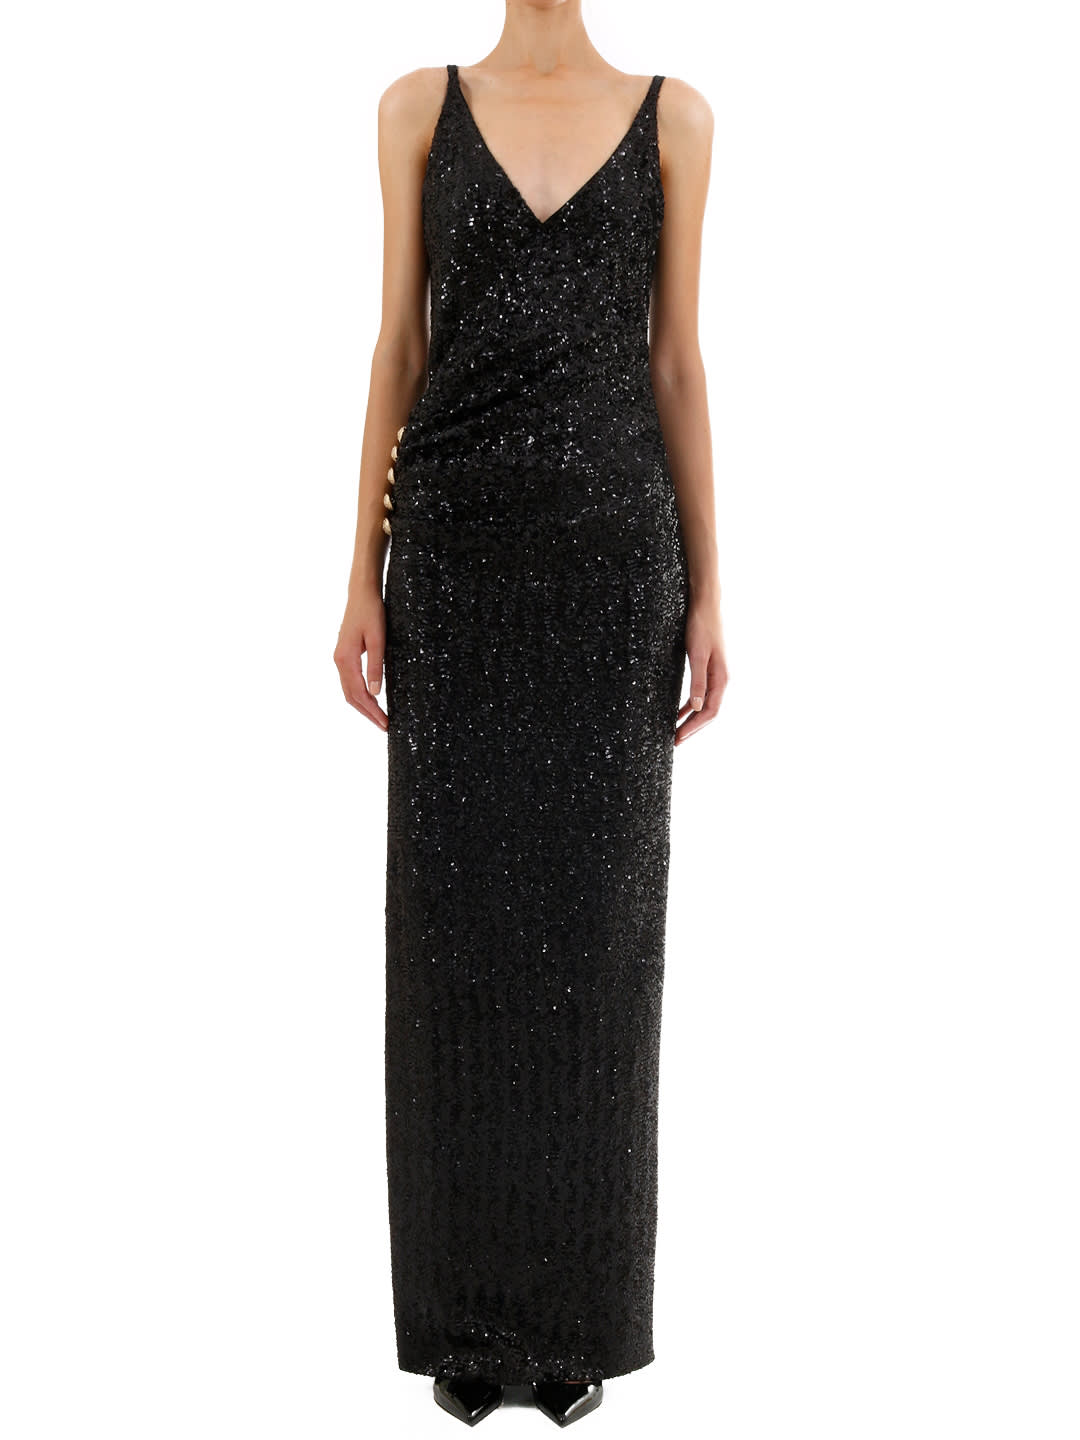 Balmain Sequins Long Dress